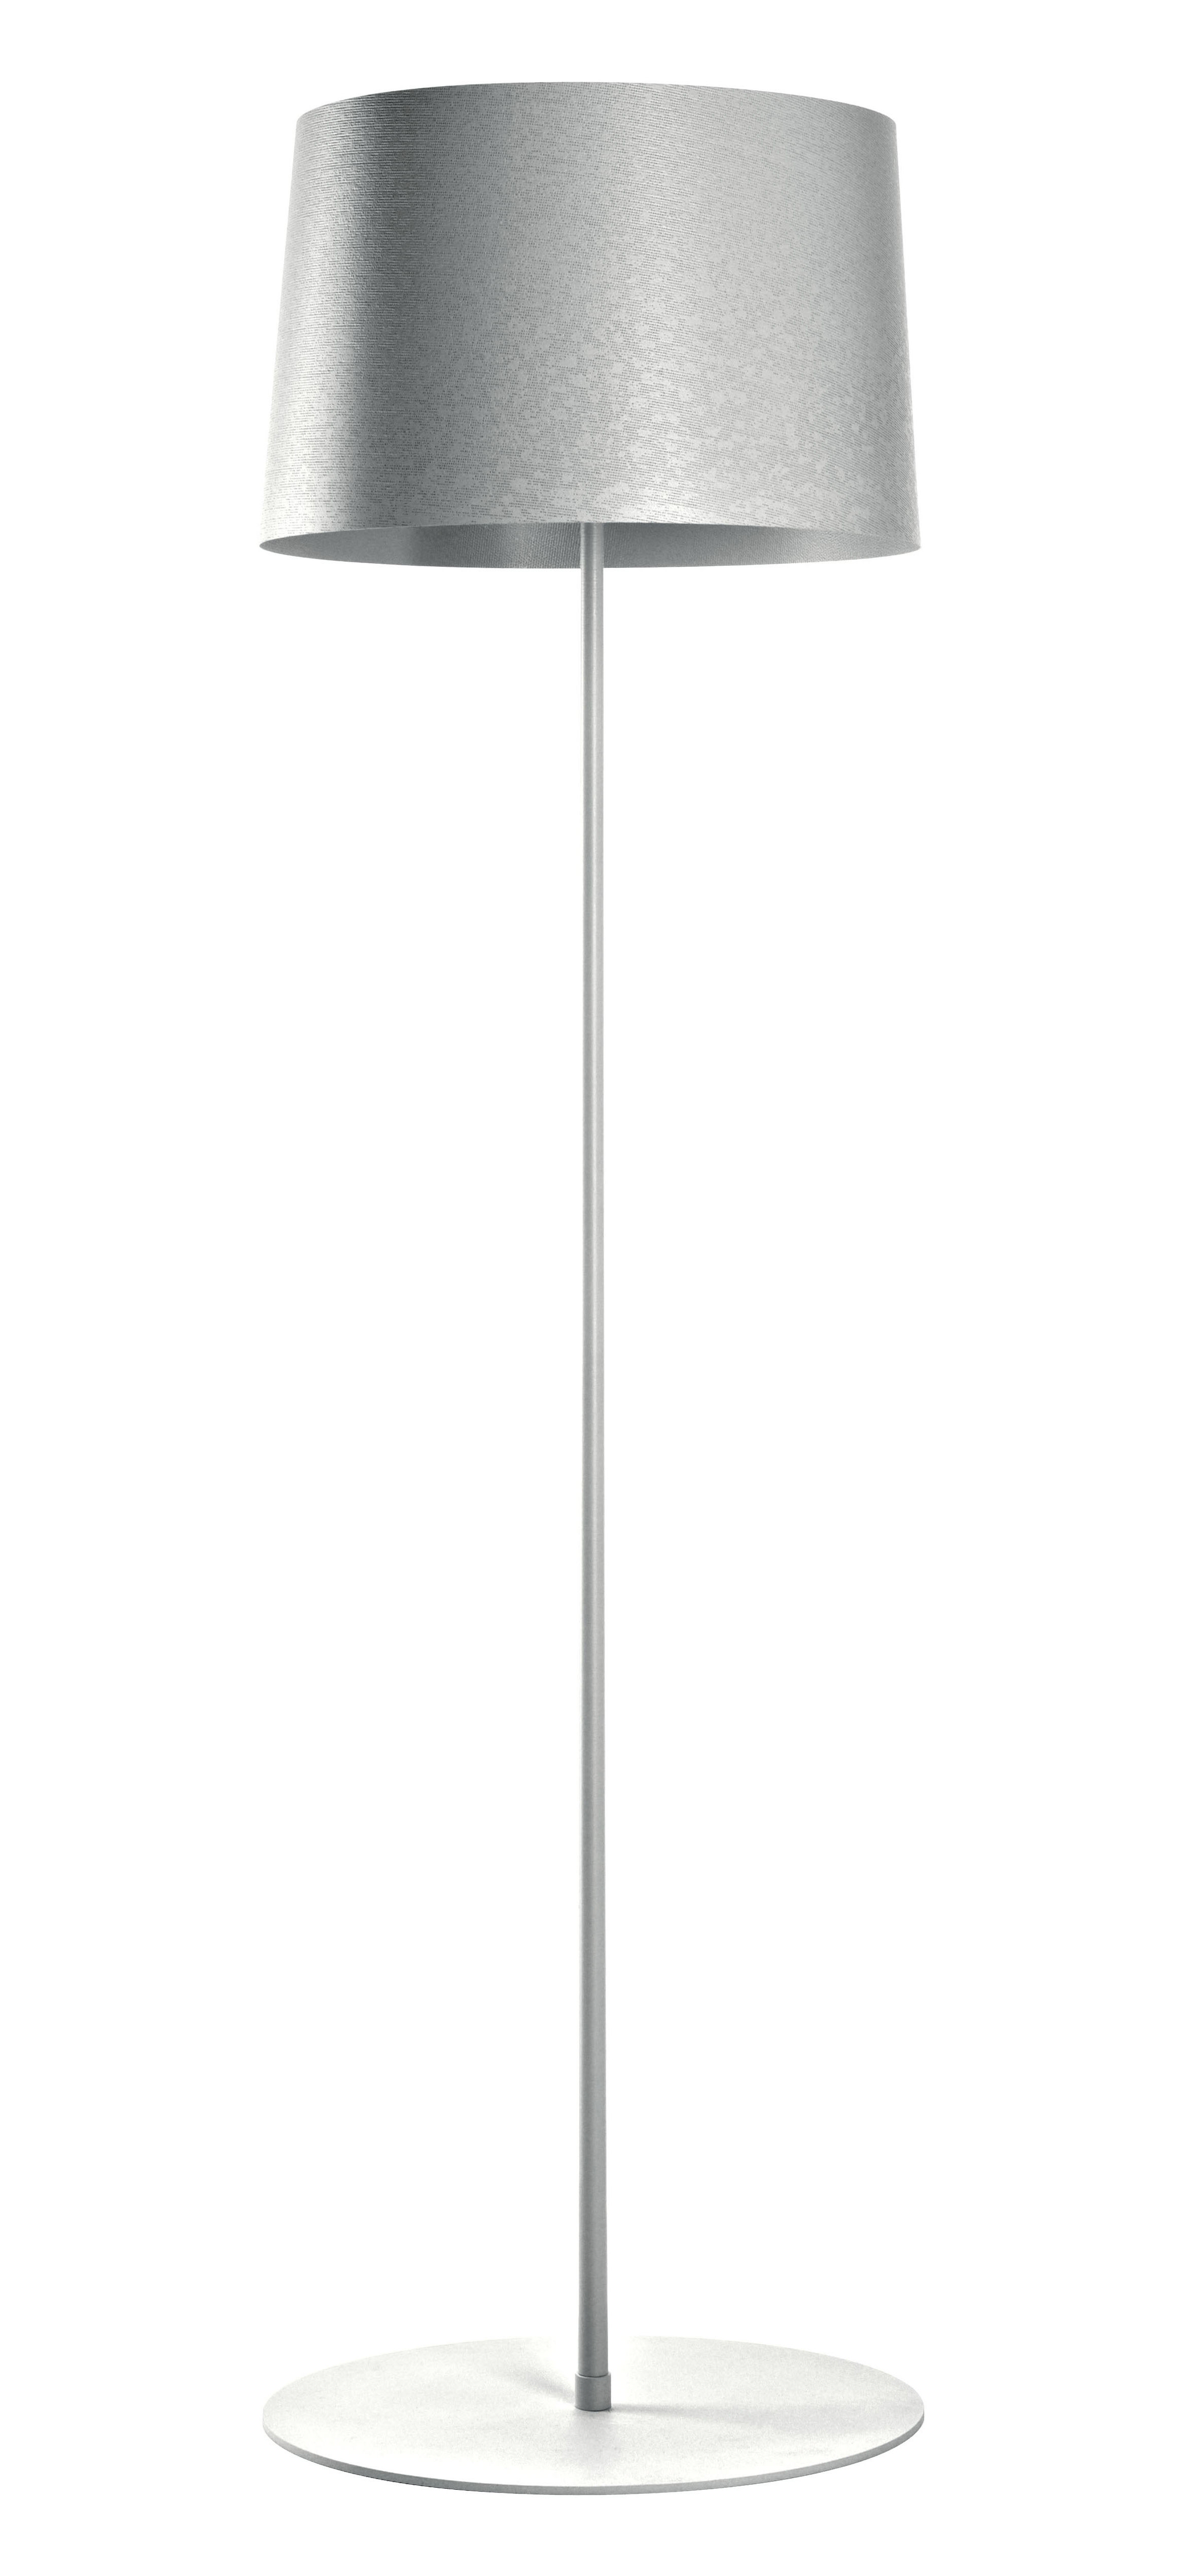 Short Floor Reading Lamps : Twiggy small reading lamp white by foscarini